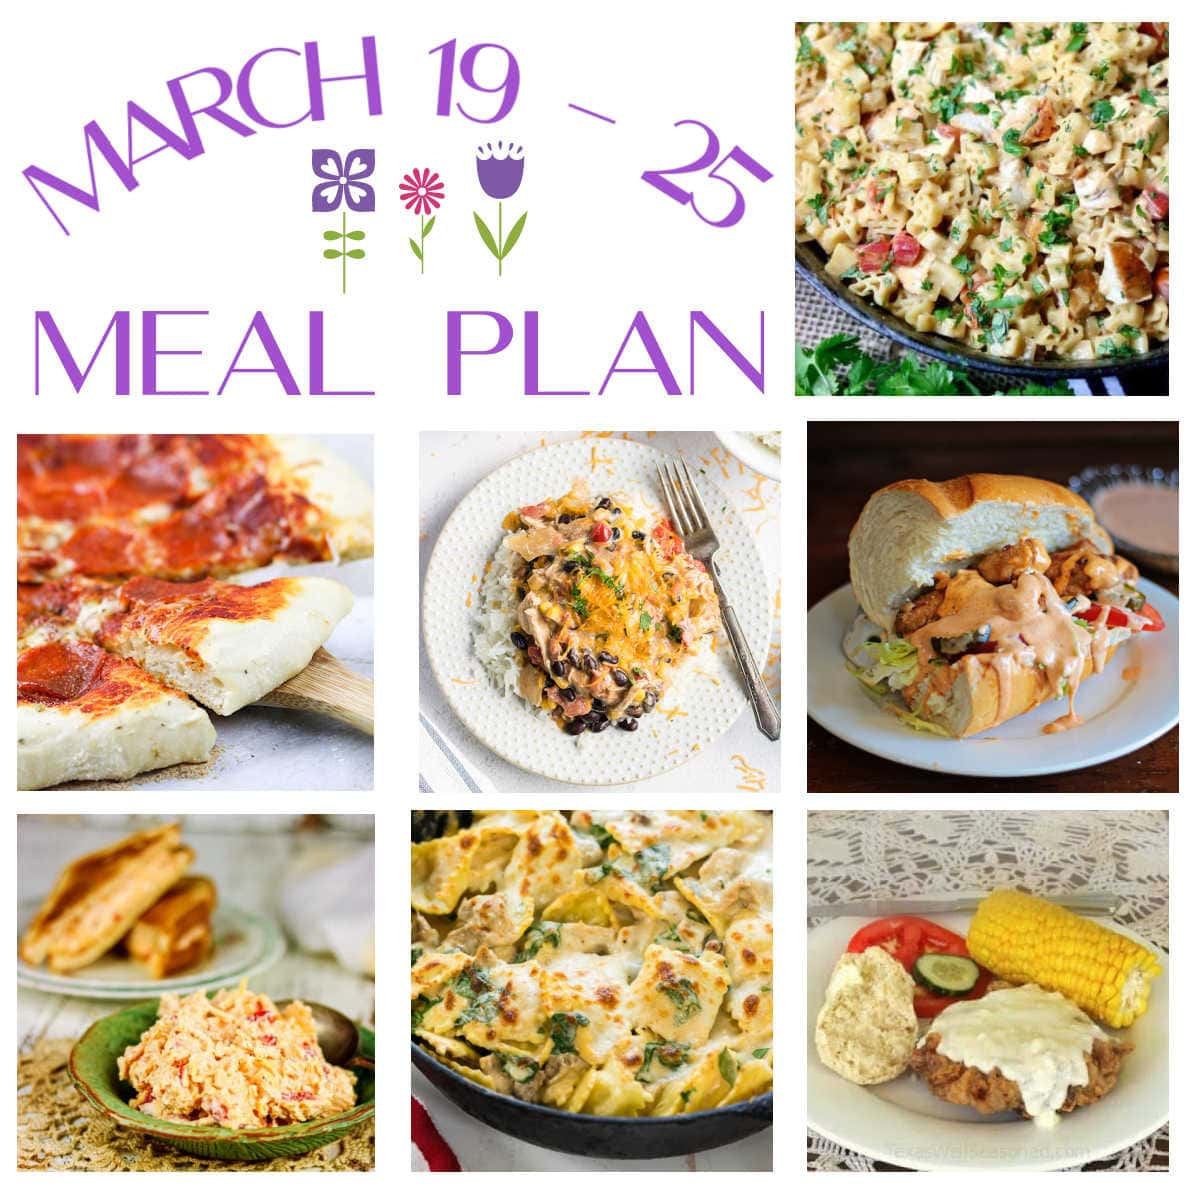 A collage of the main dishes included in the March 19-25 meal plan.